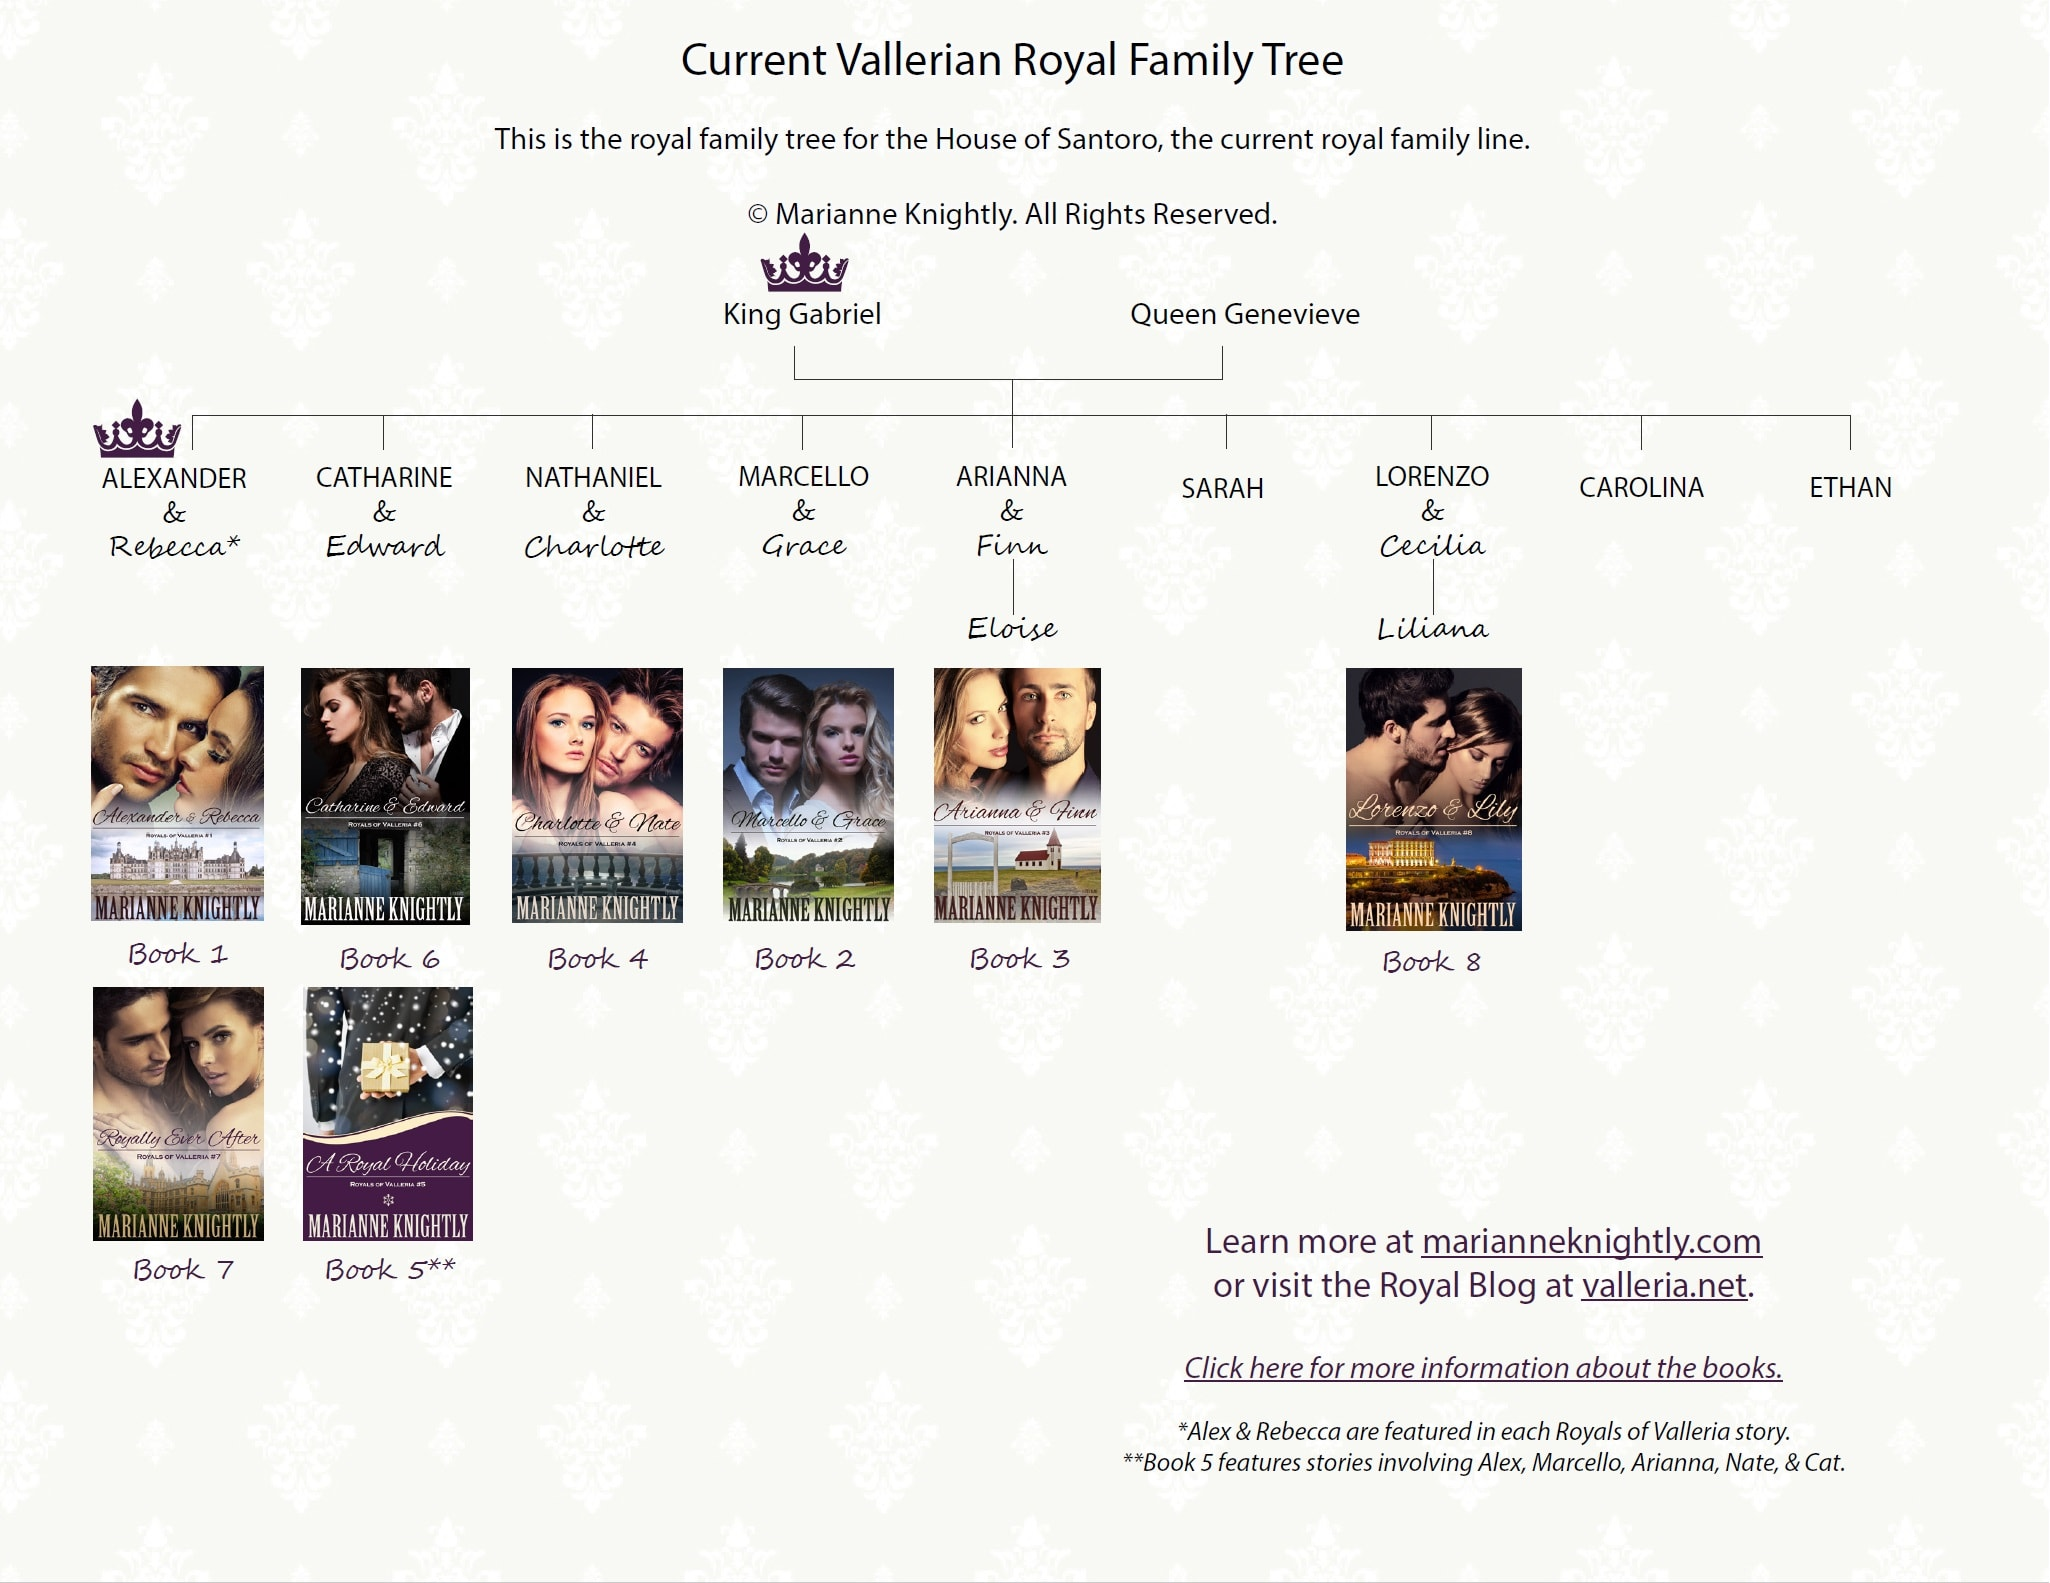 Gabriel's Family Tree (Marianne Knightly's Valleria)